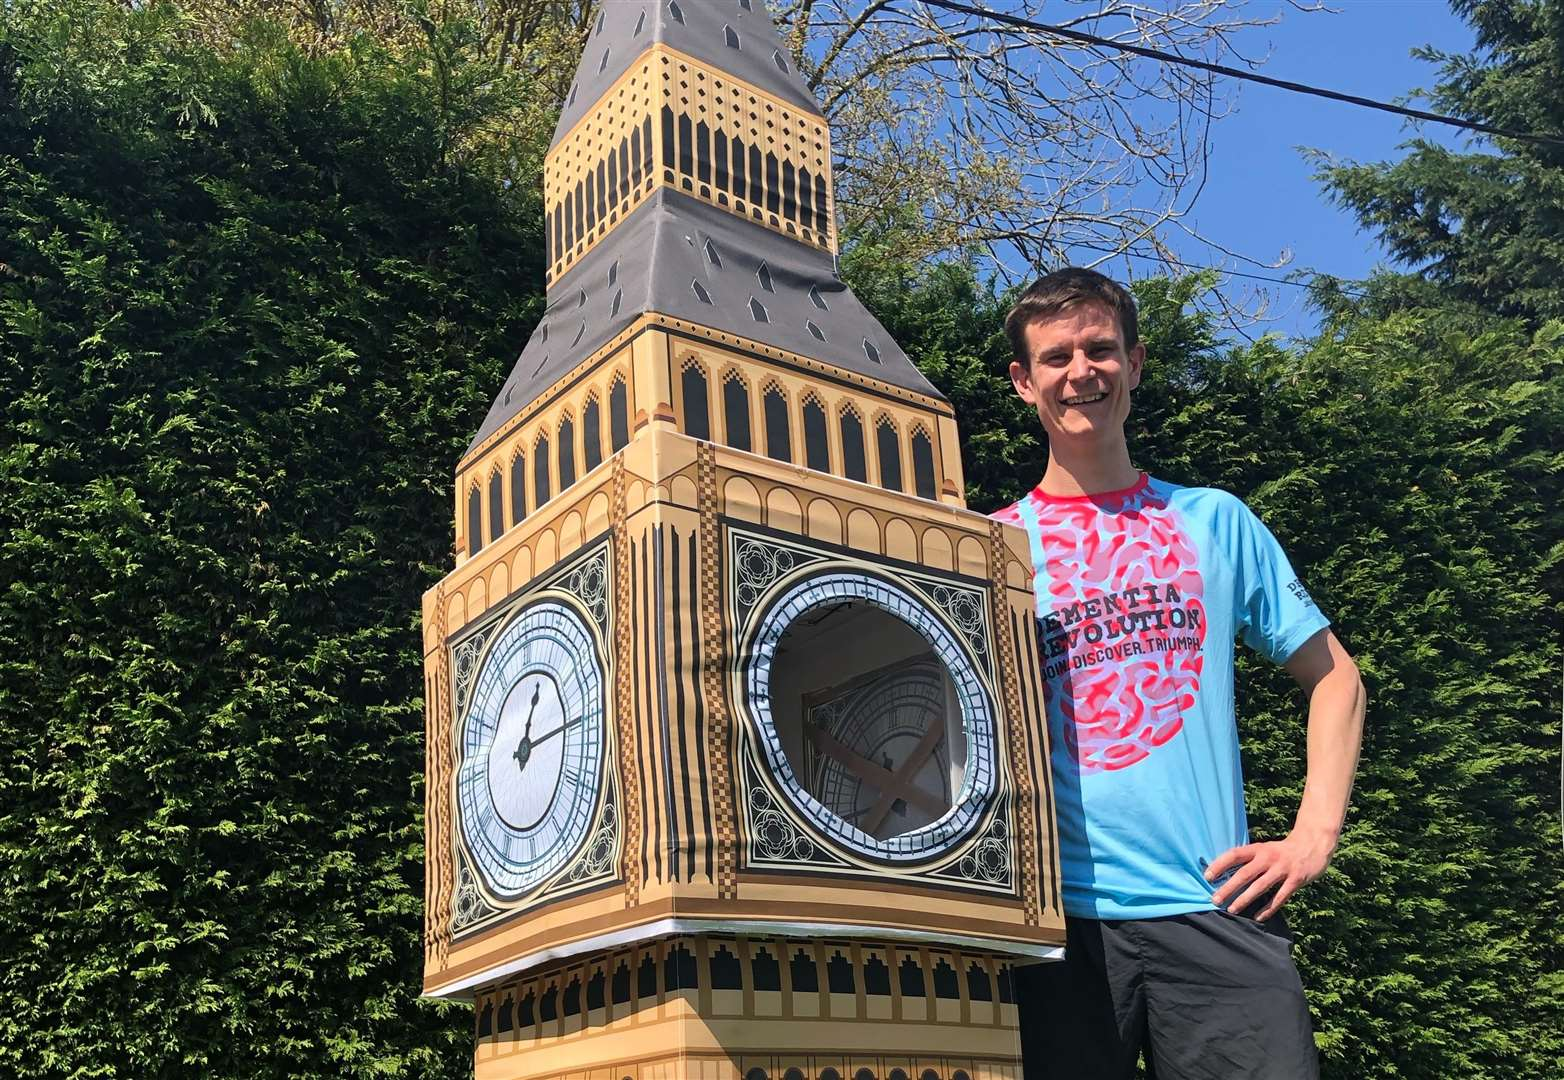 Big Ben costume runner describes 'mental' press attention